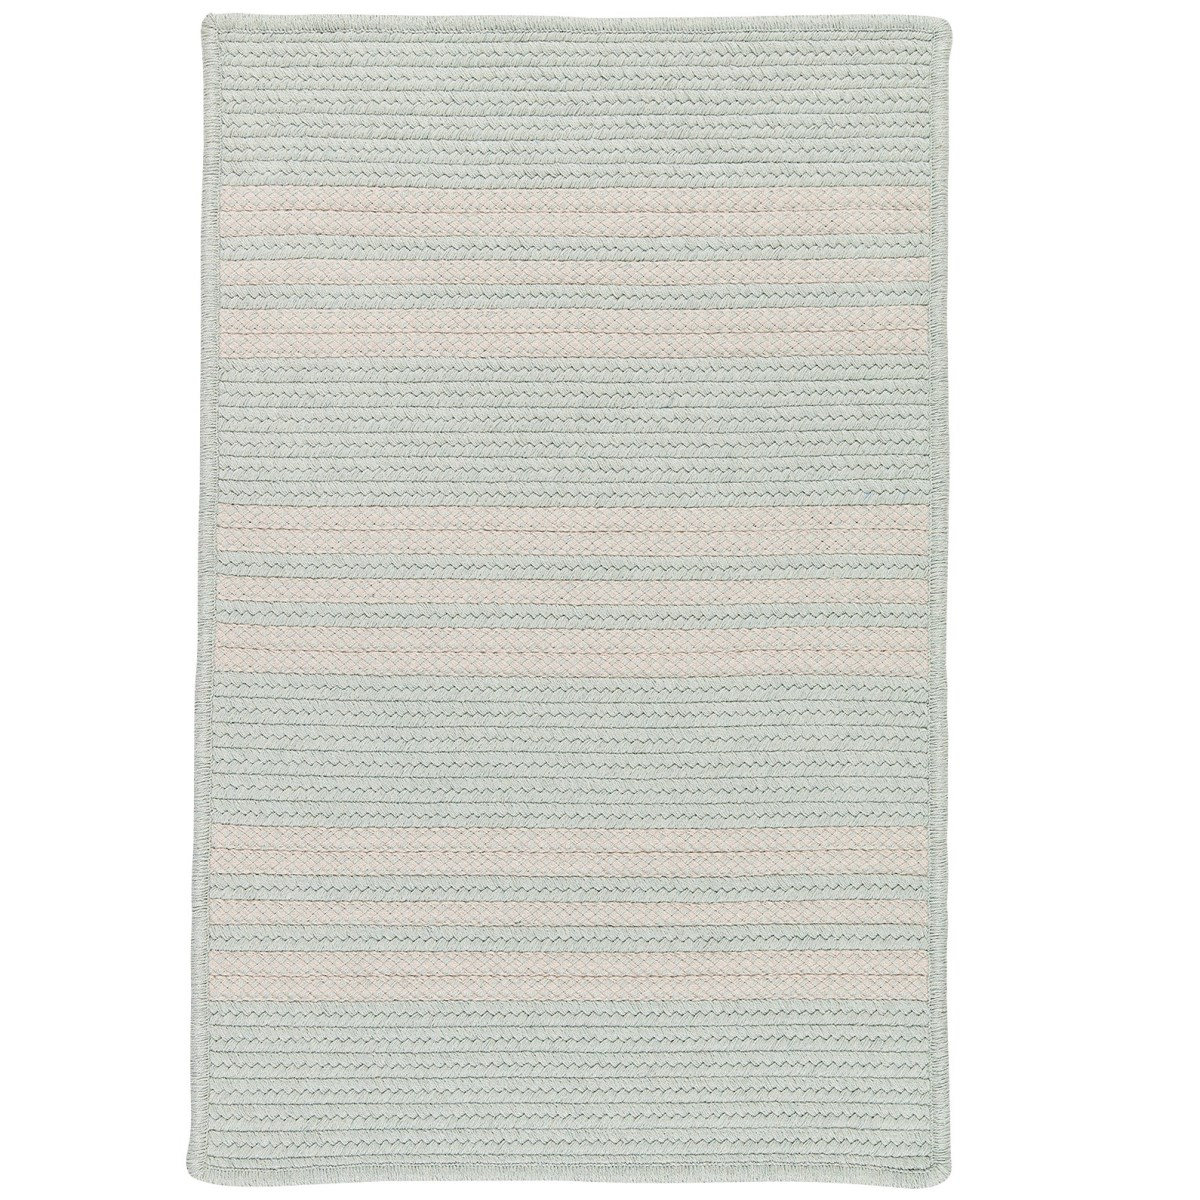 Sunbrella Southport Stripe Sea Outdoor Braided Rectangular Rugs